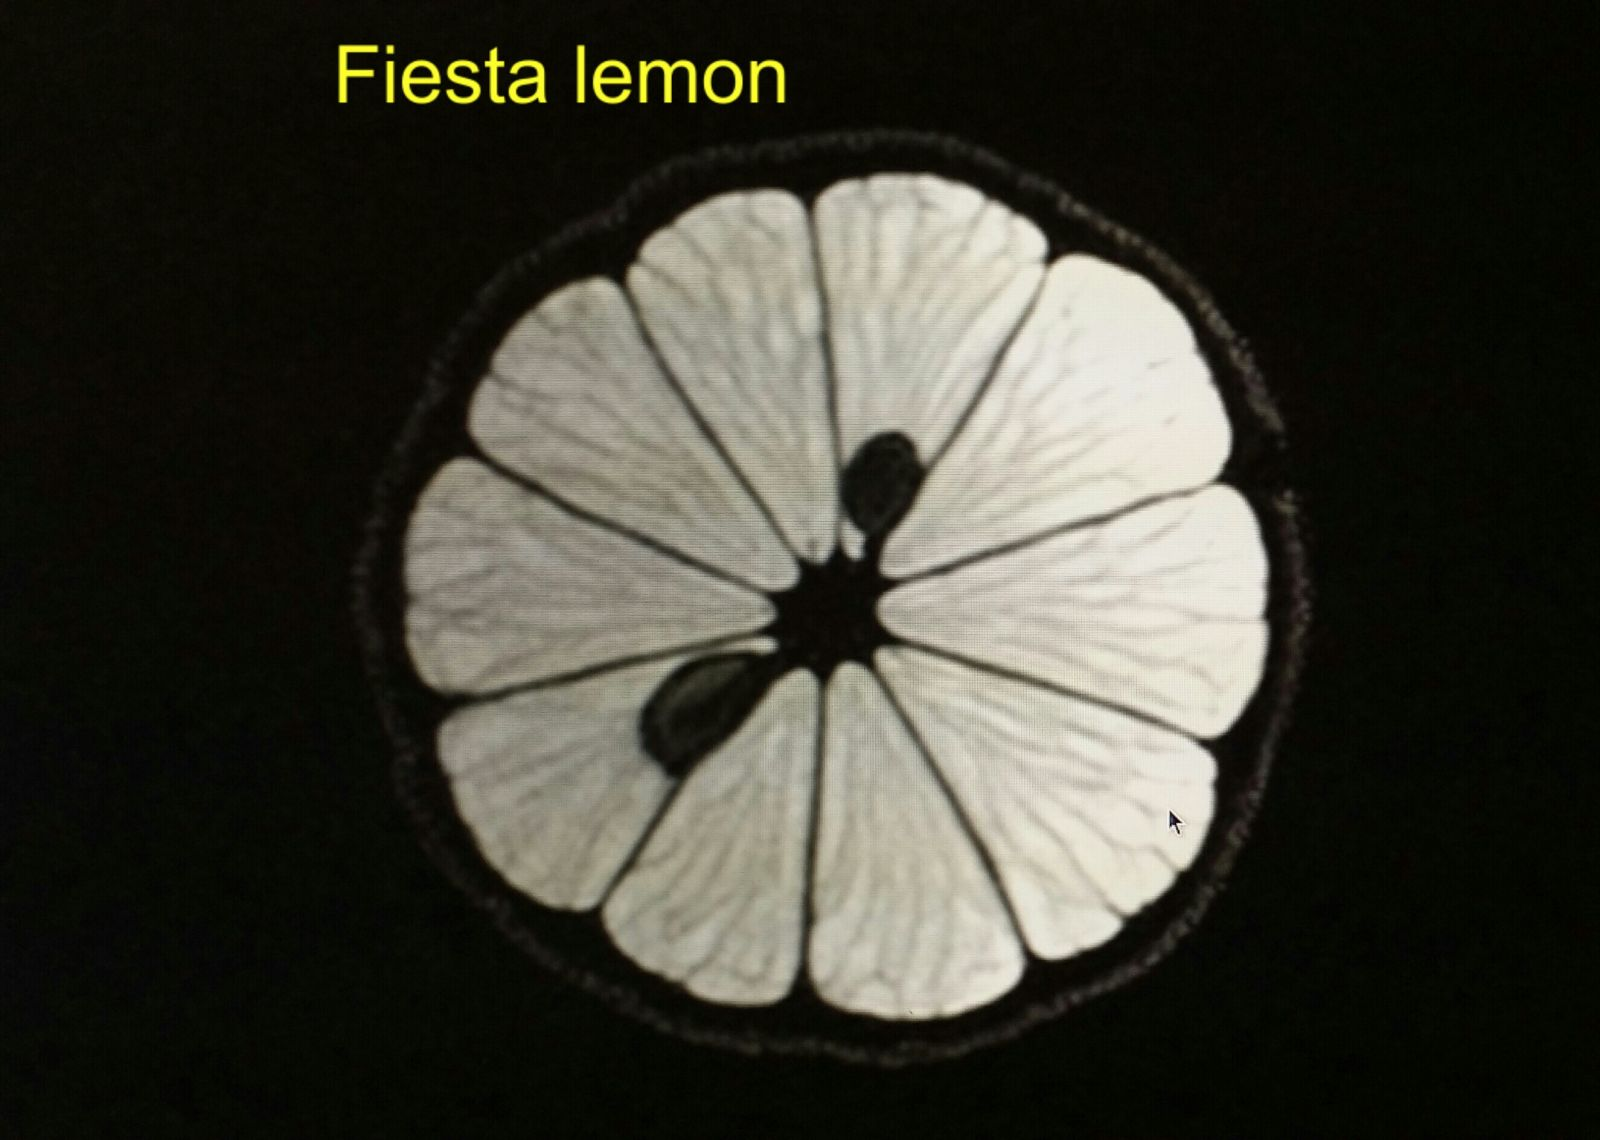 Fiesta lemon